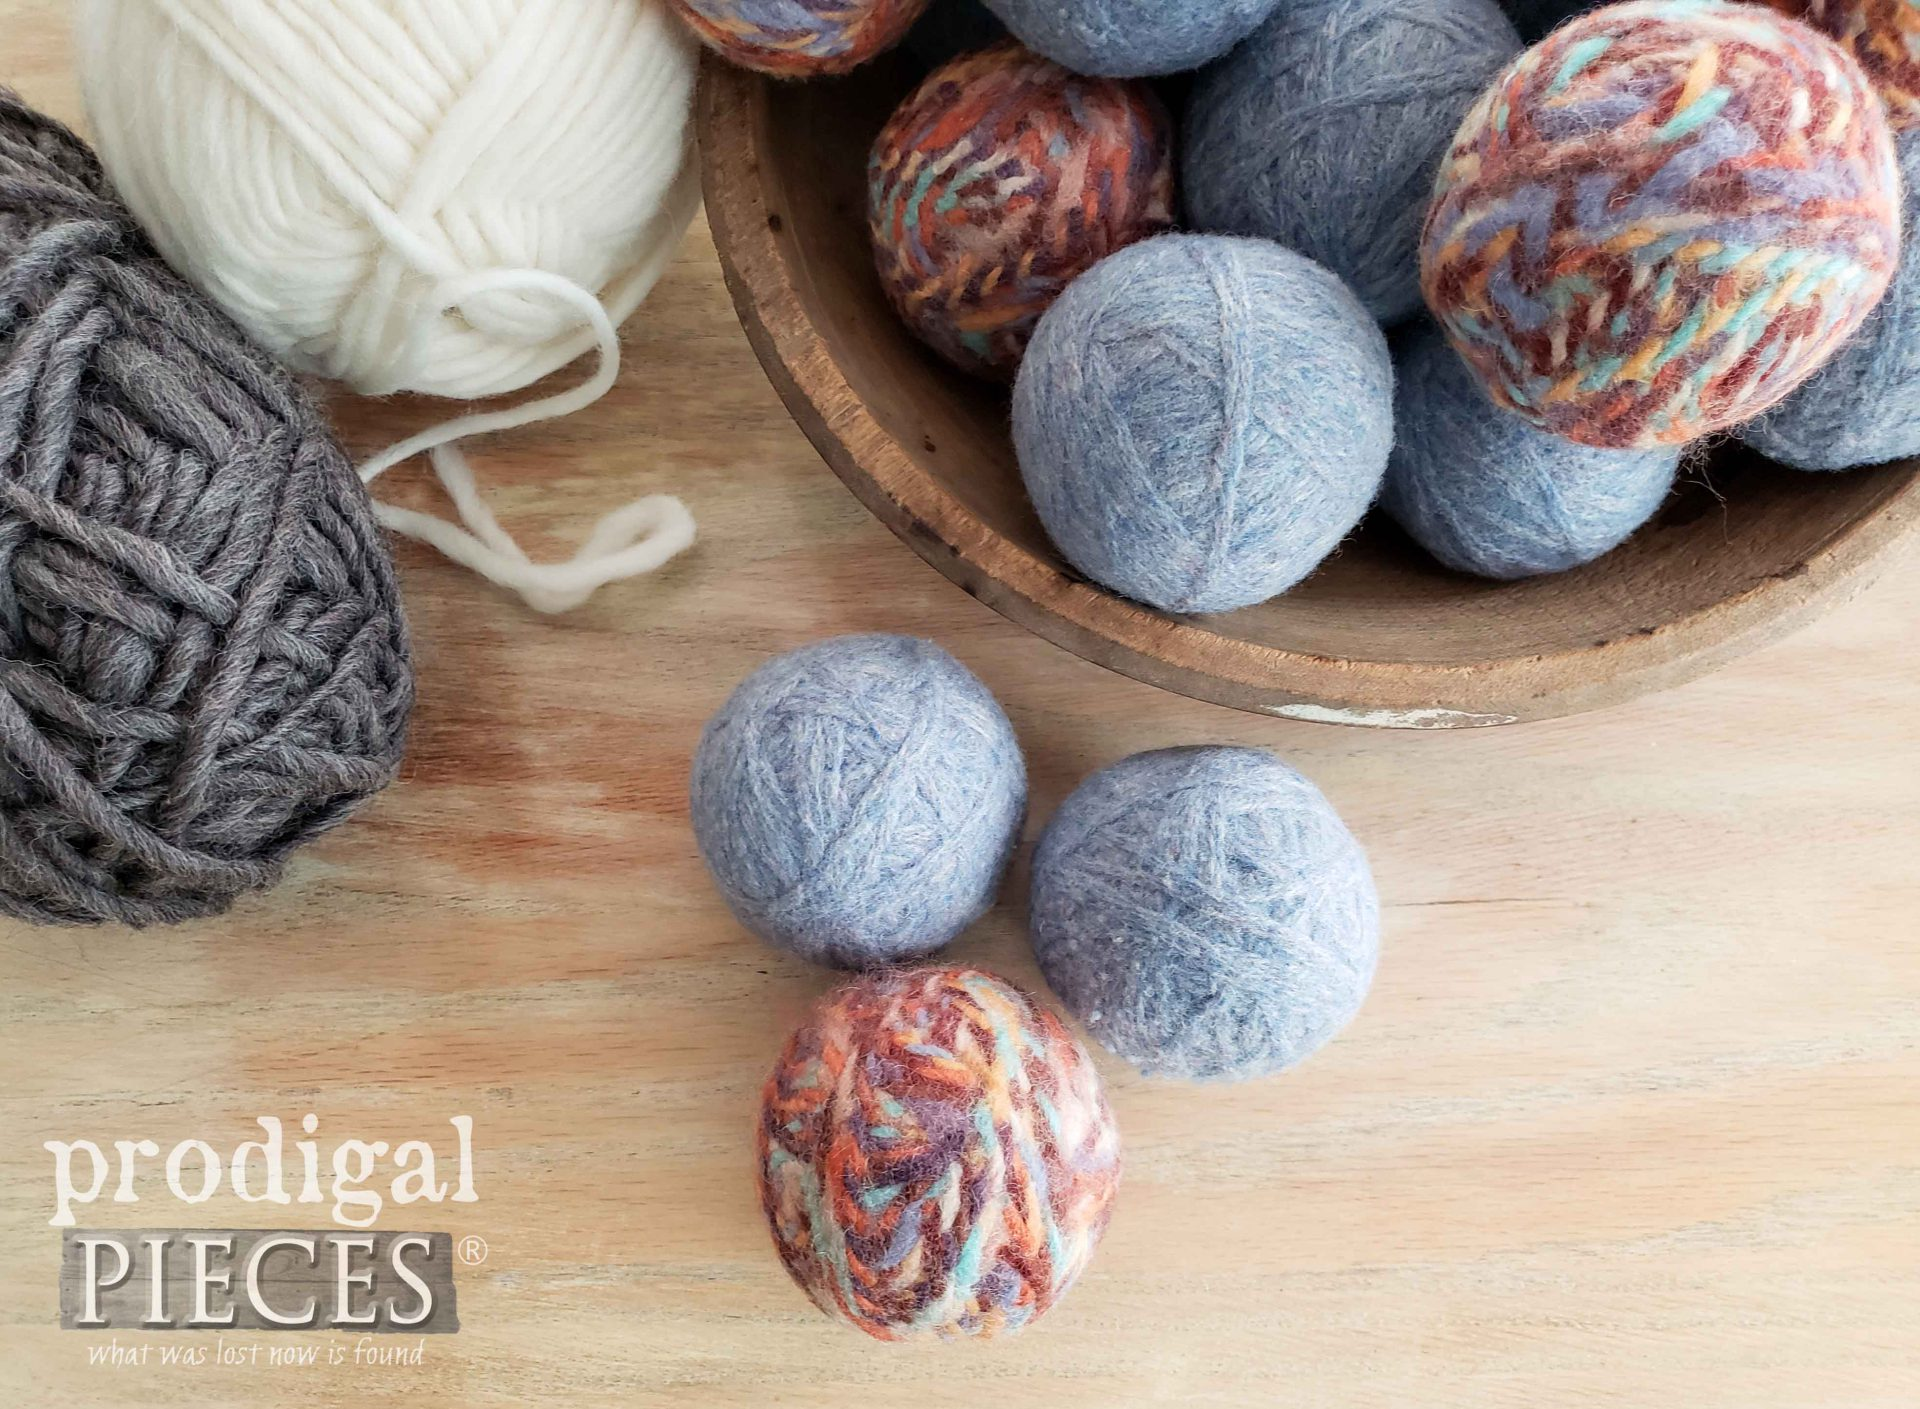 DIY Wool Dryer Ball Trio by Larissa of Prodigal Pieces | prodigalpieces.com #prodigalpieces #diy #farmhouse #crafts #laundry #upcycle